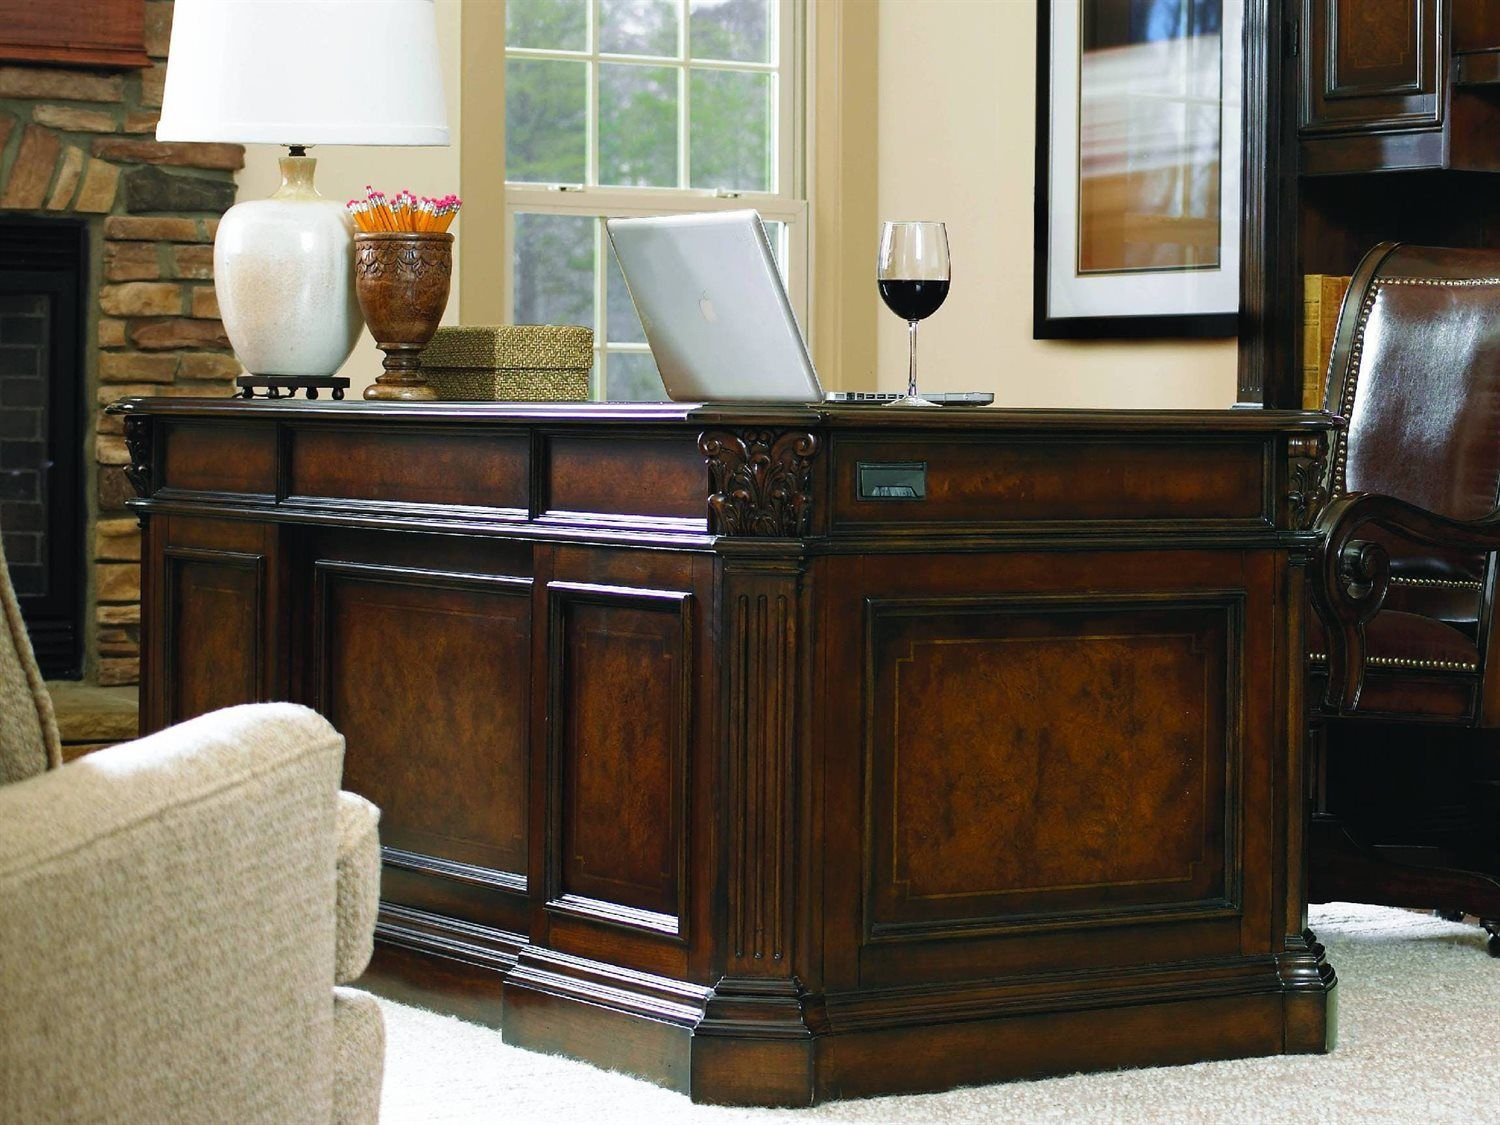 Shop For Hooker Furniture European Renaissance II Executive Desk, And Other  Home Office Desks Furniture. Cherry And Myrtle Burl Veneers With Hardwood  Solids ...